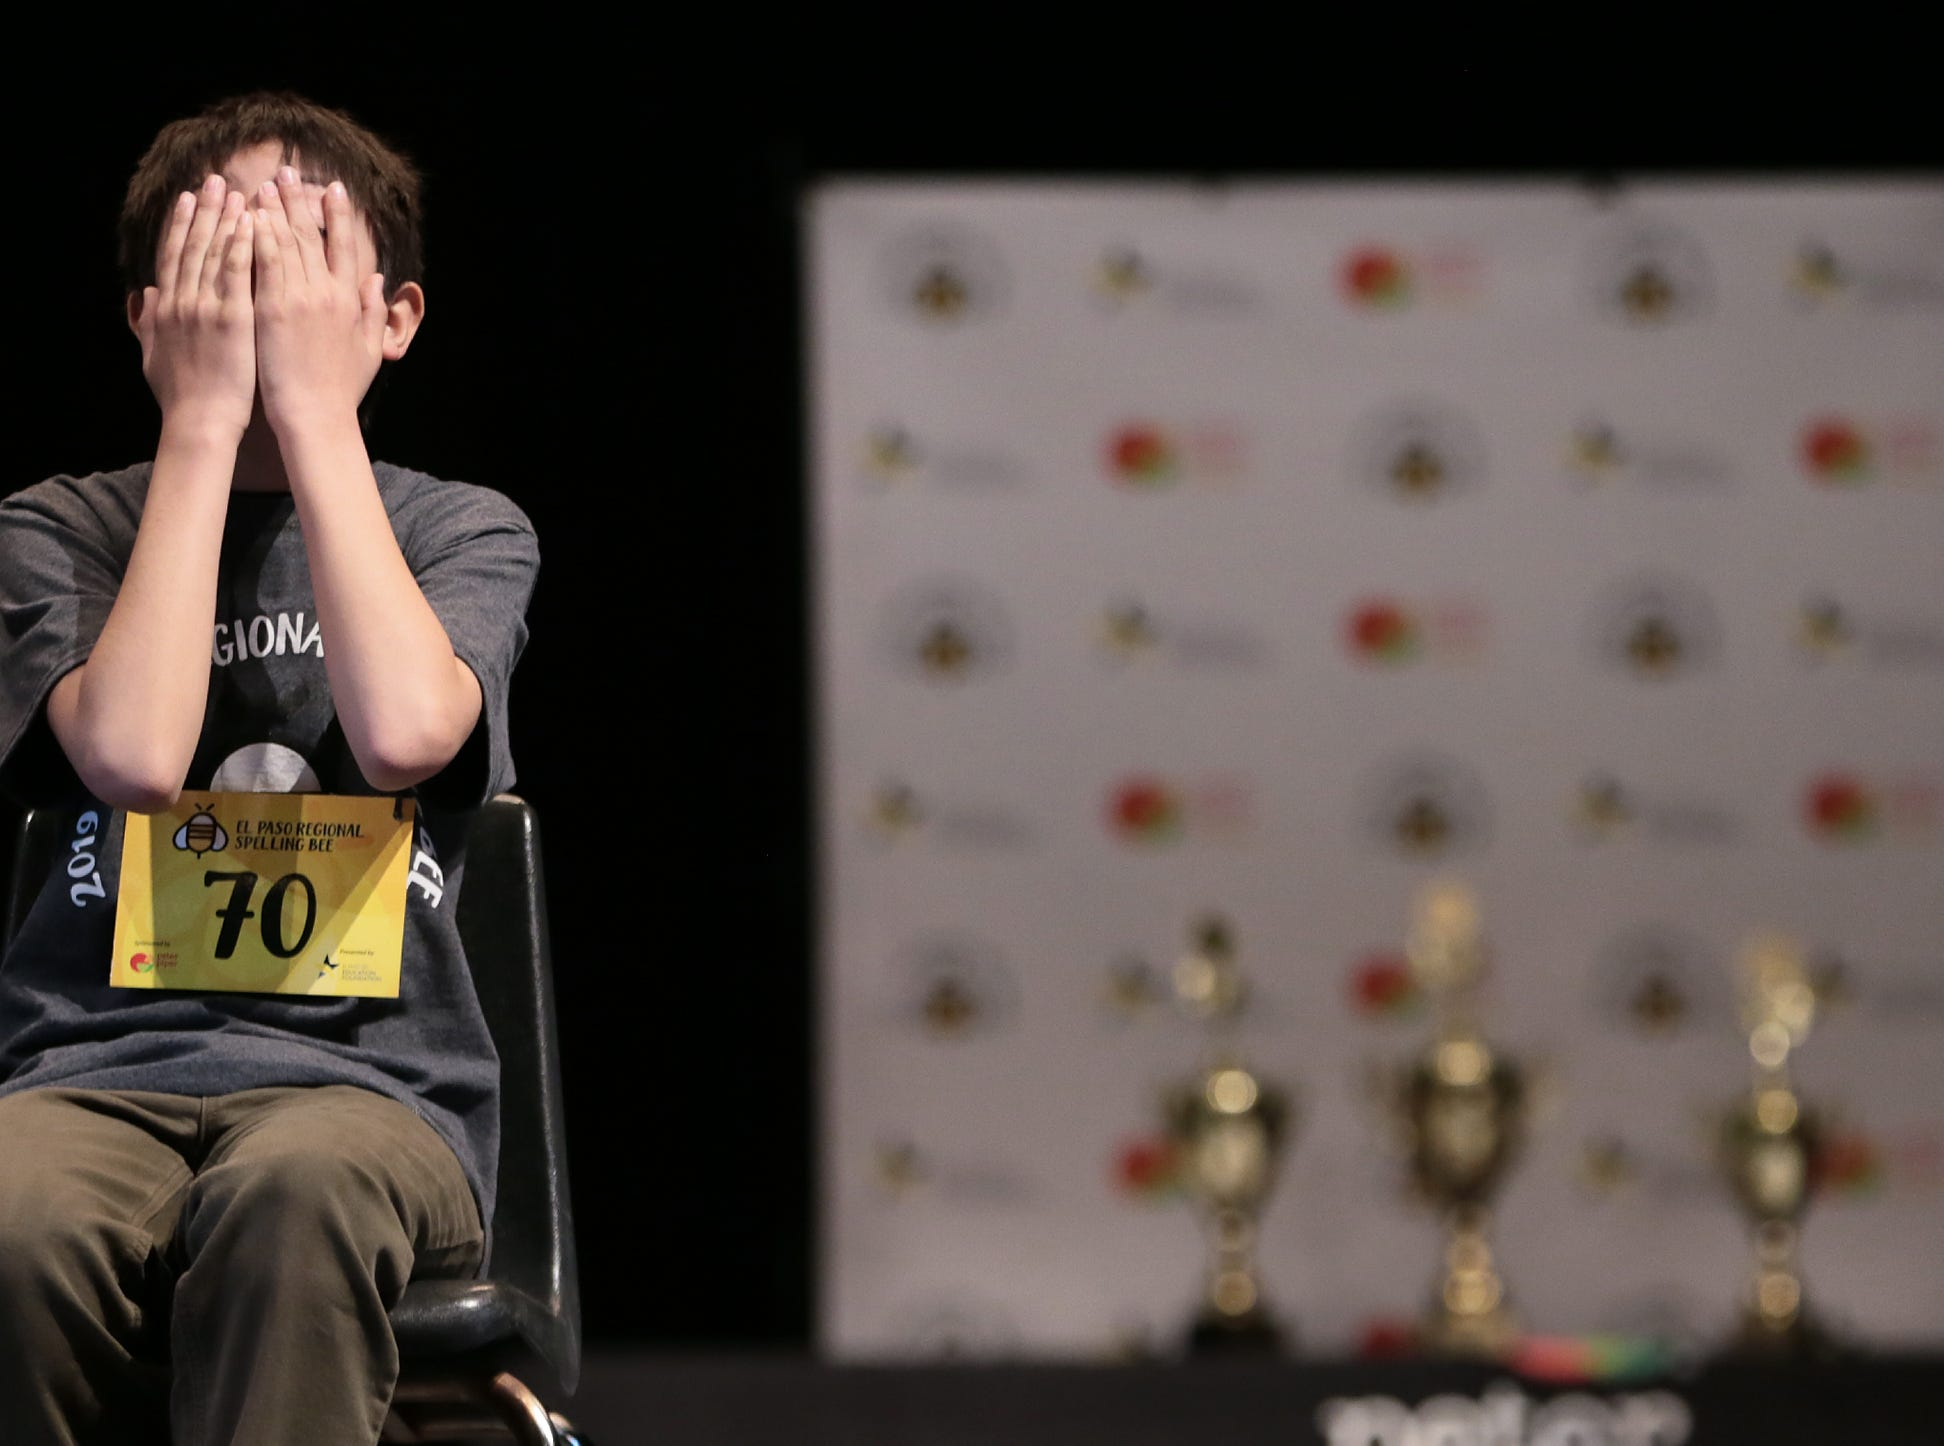 Third place finisher Ian Austin reacts to the pressure with only three spellers remaining in the 2019 El Paso Regional Spelling Bee.